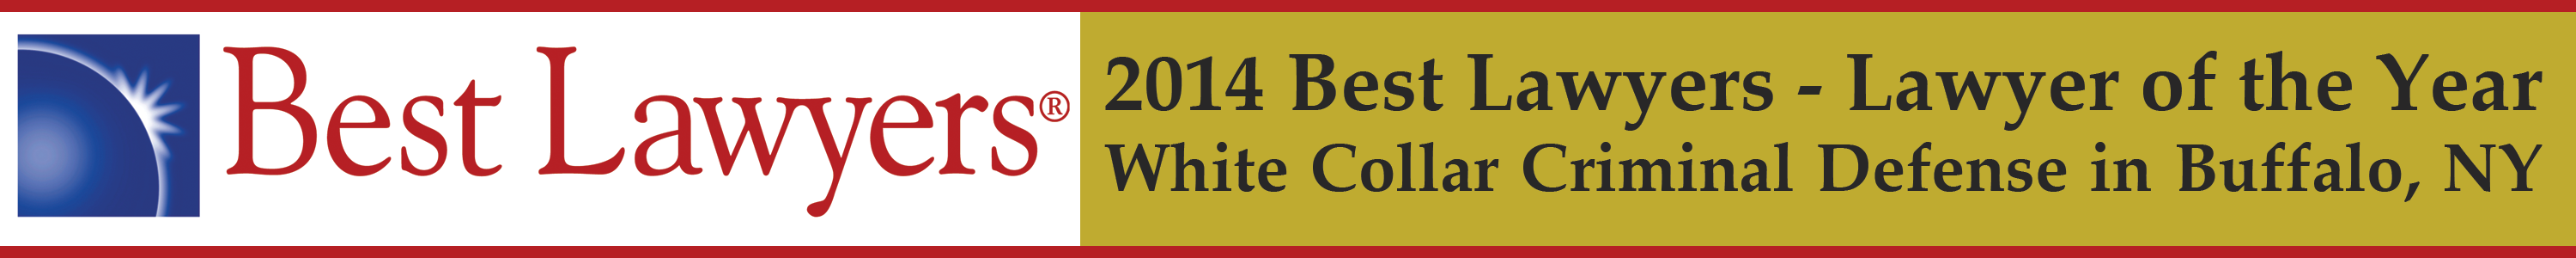 2014 Best Lawyers Lawyer of the Year White Collar Criminal Defense Buffalo NY